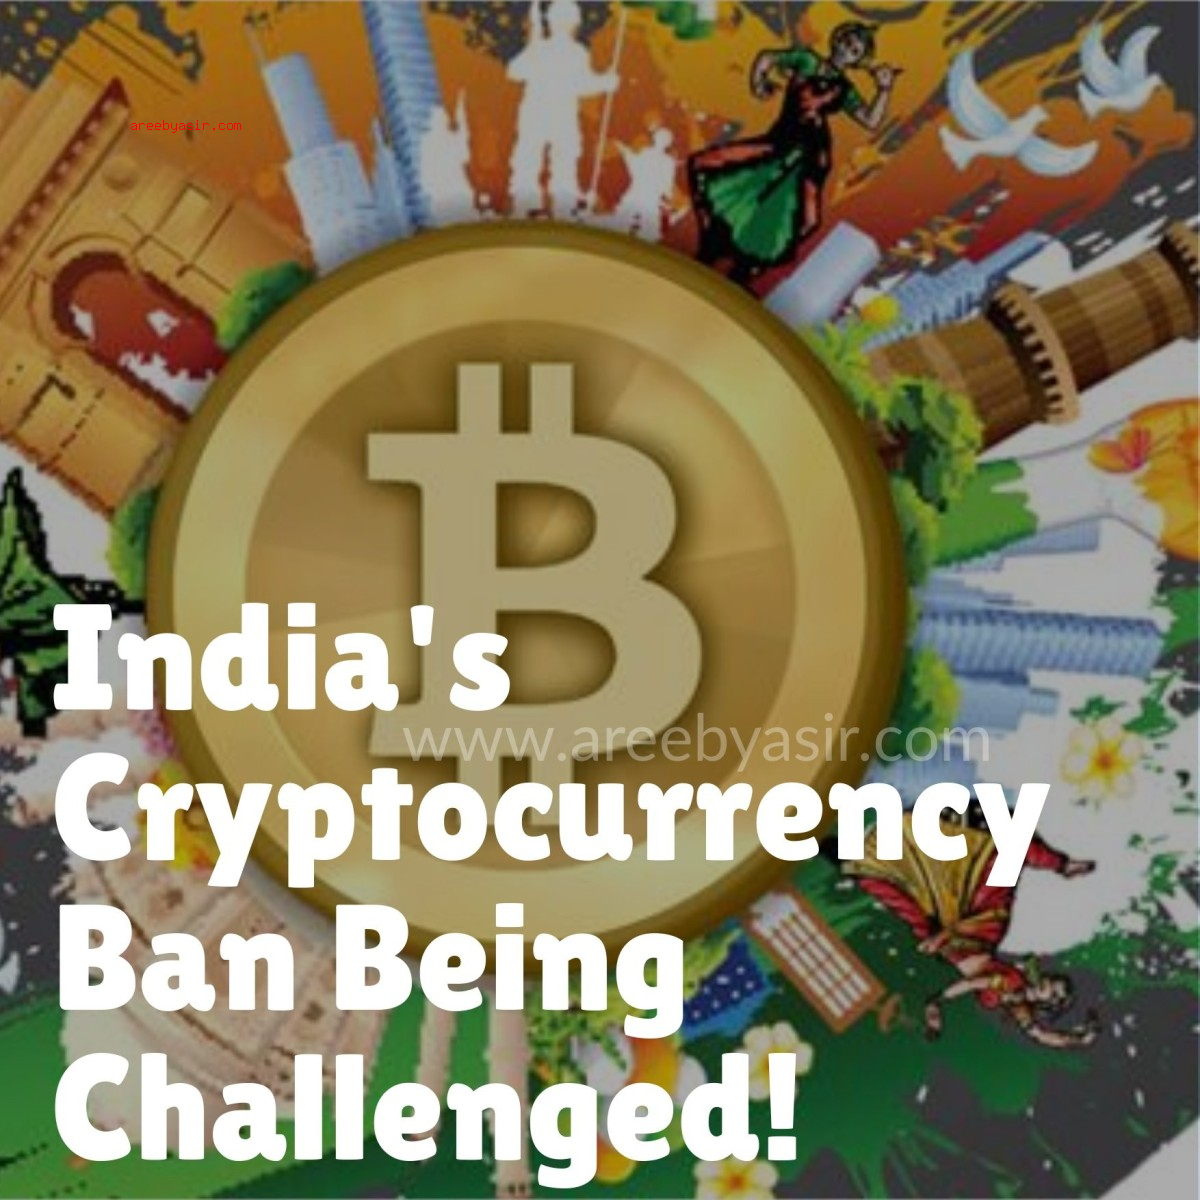 India's Bitcoin Ban Challenged